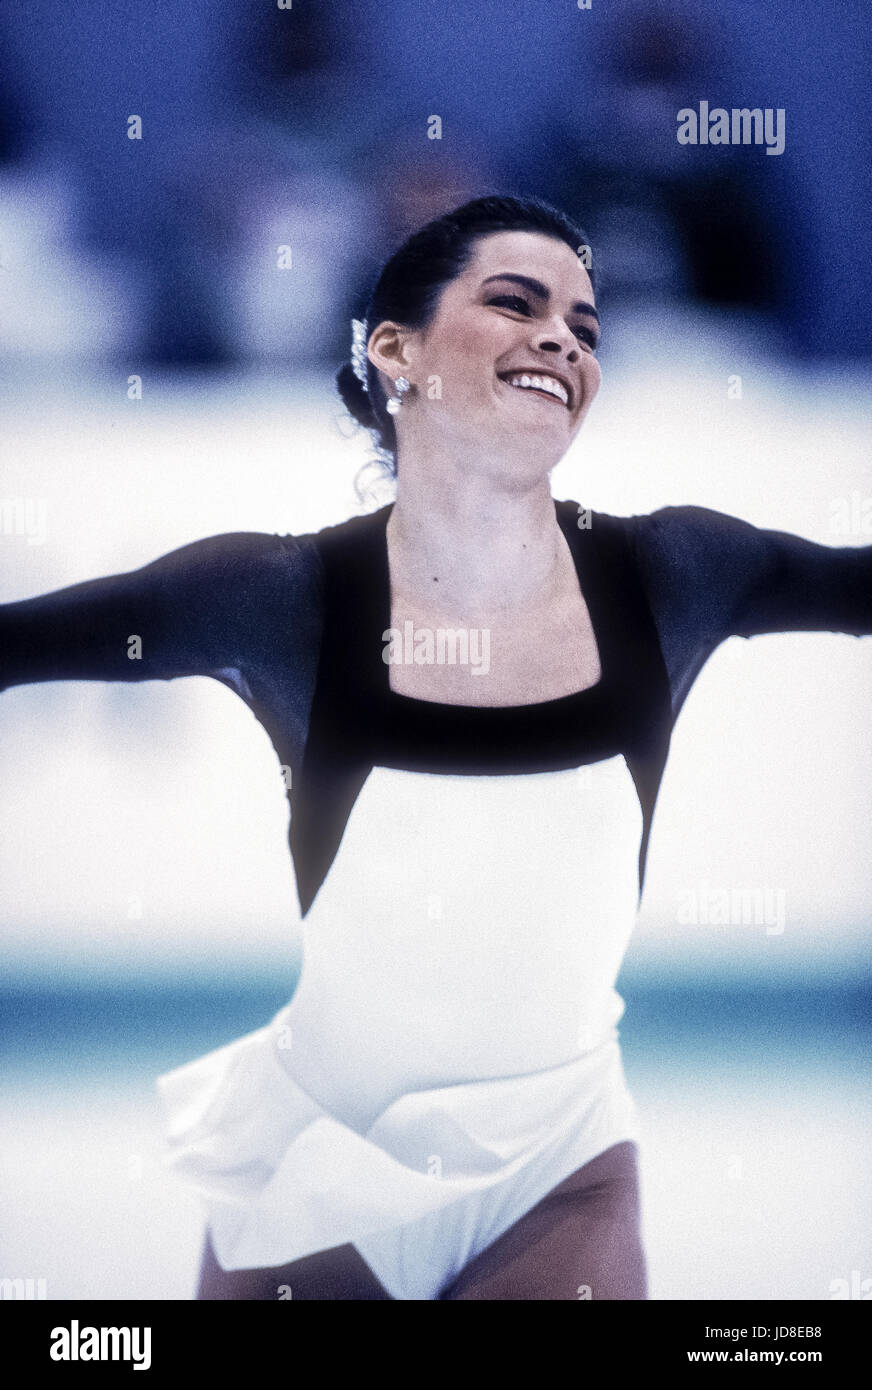 Nancy Kerrigan (USA), silver medalist competing at the 1994 Olympic Winter Games - Stock Image